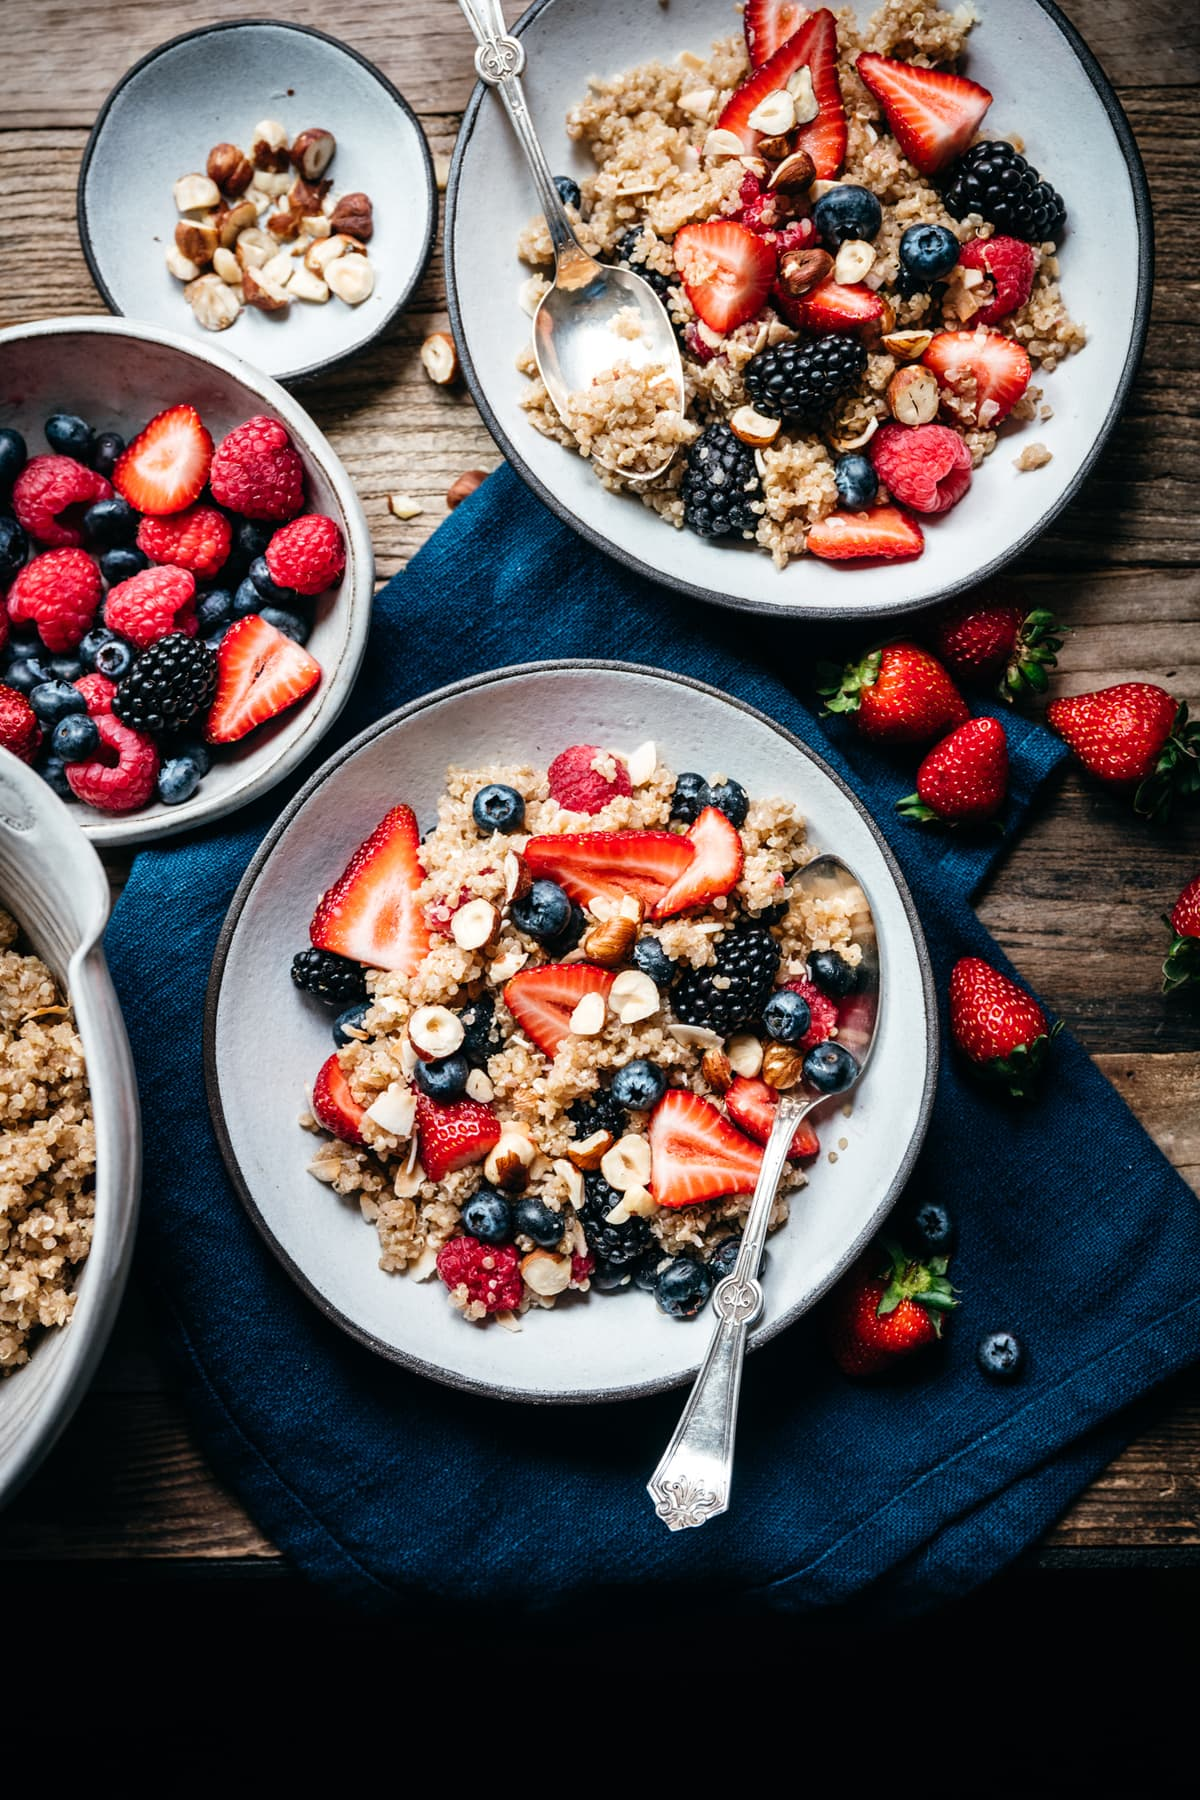 vegan breakfast quinoa with berries and coconut on wood table